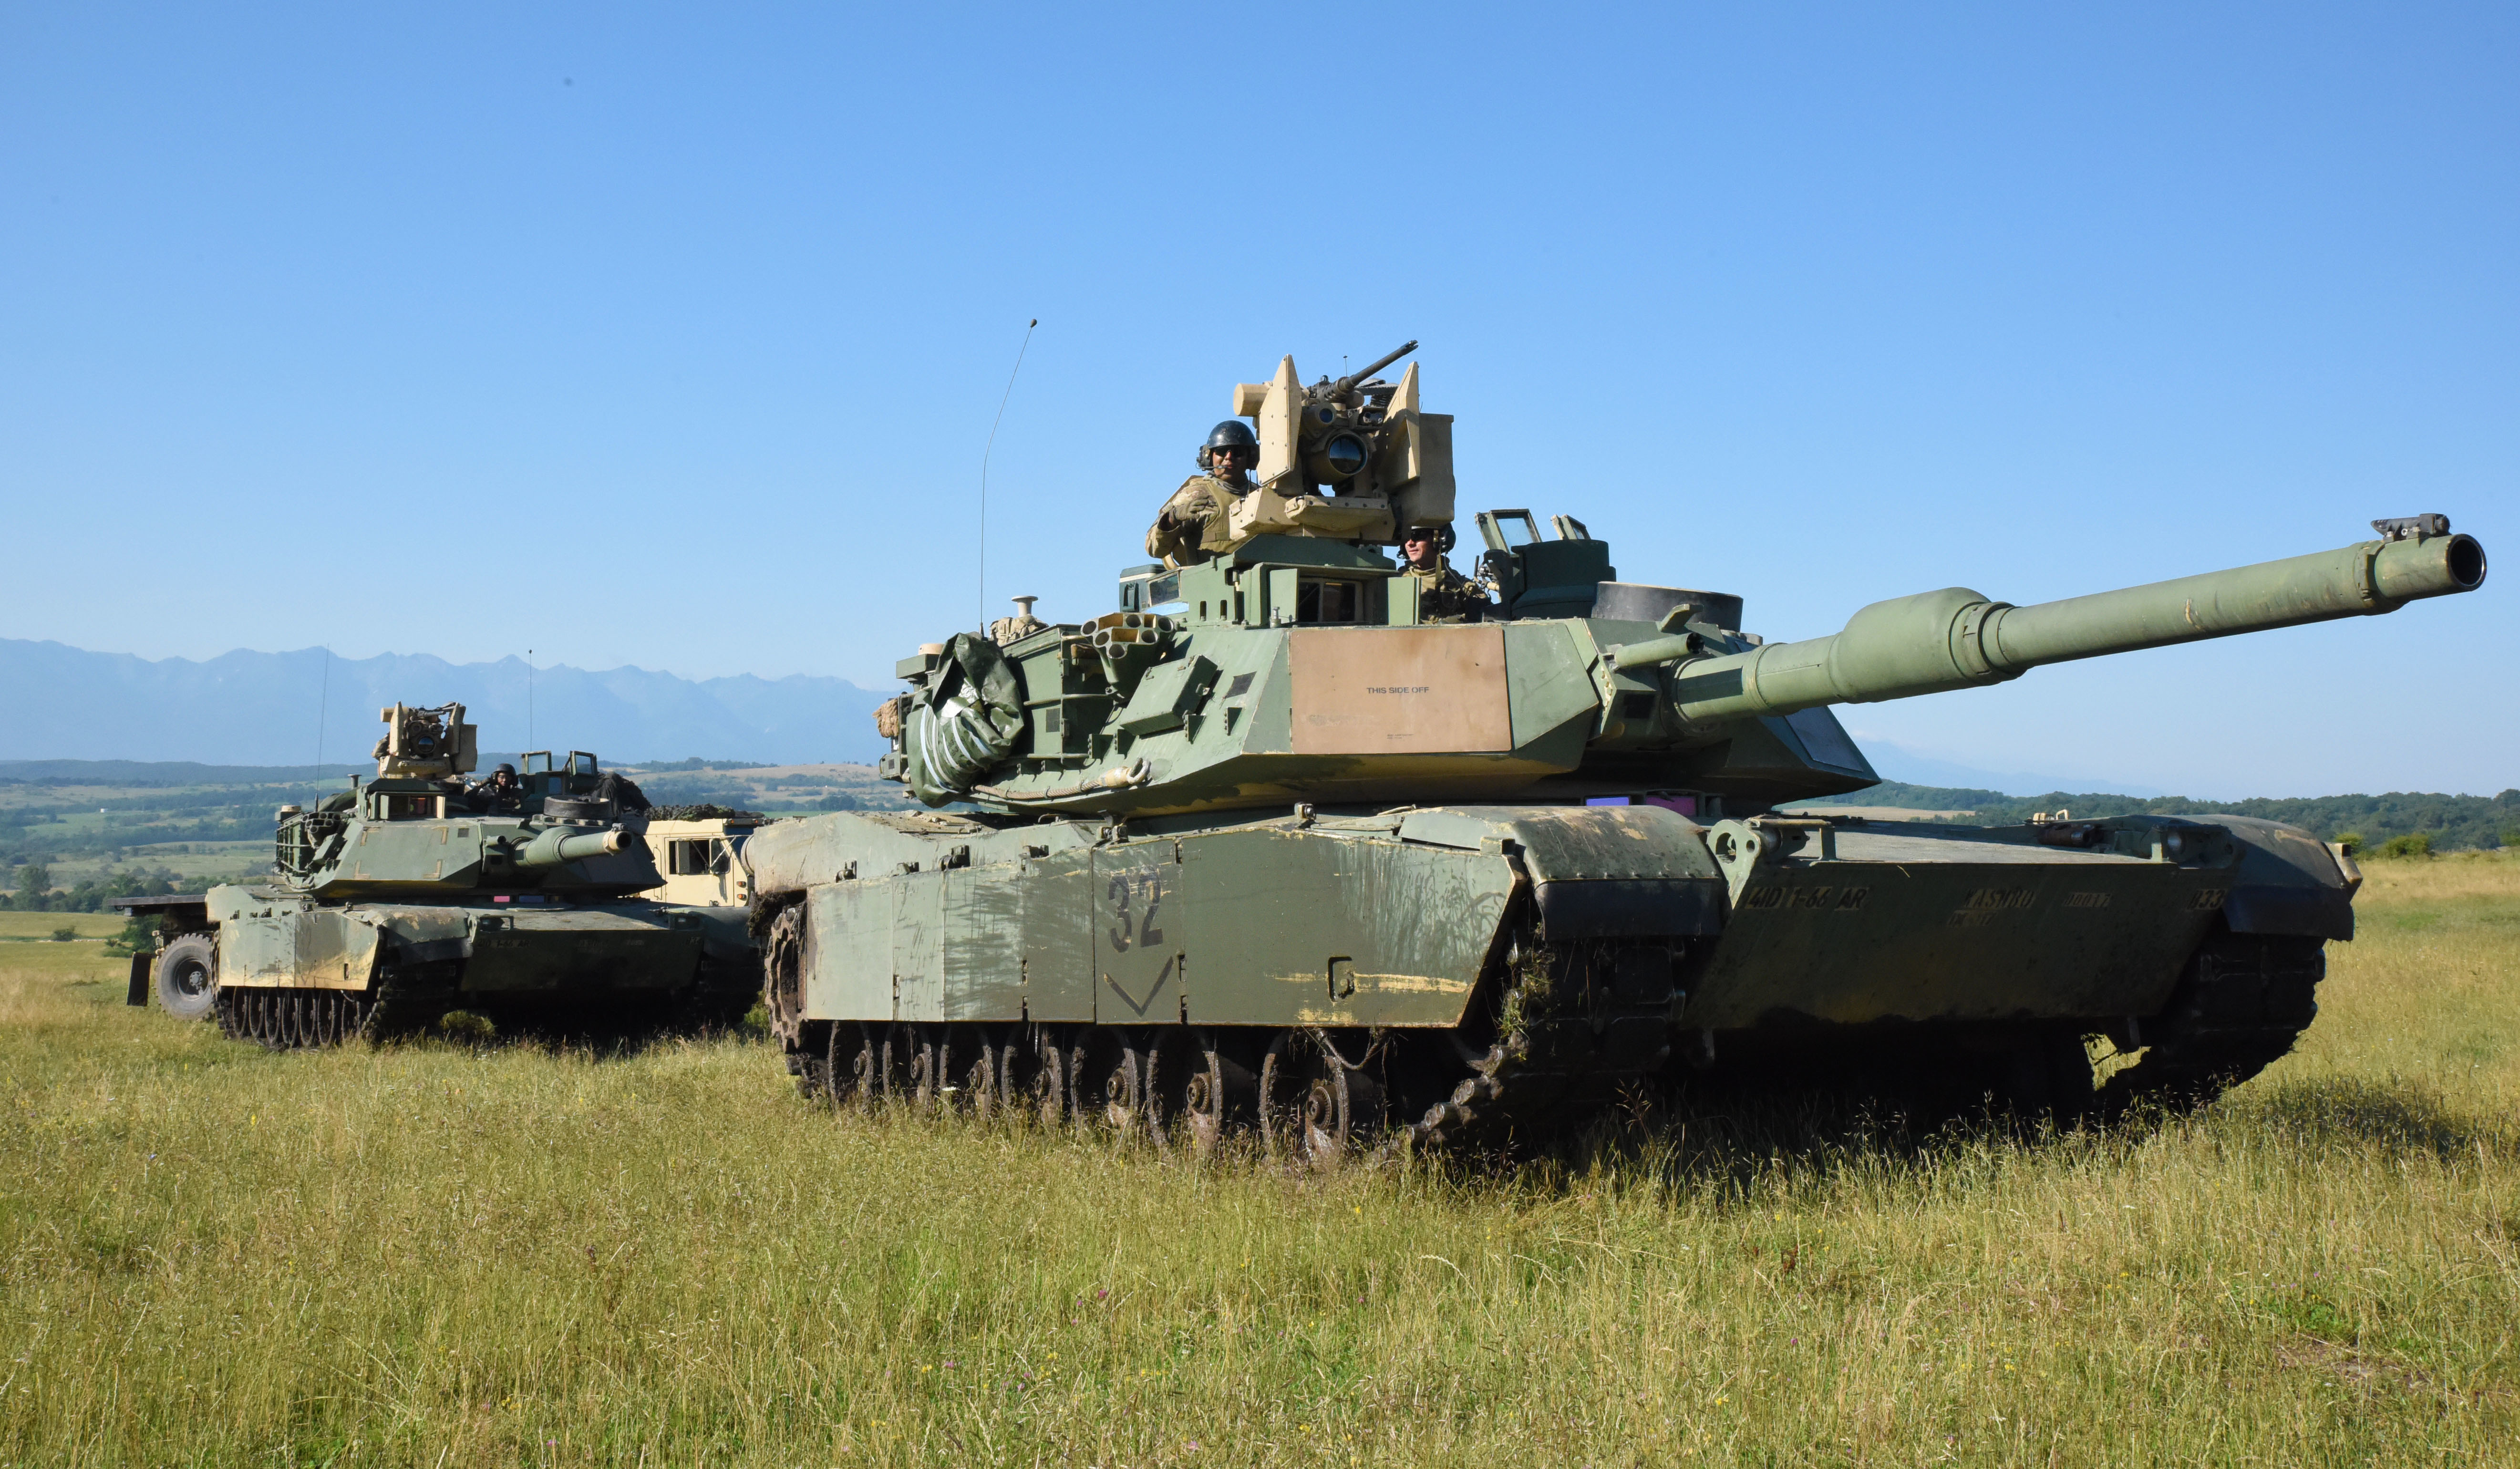 CINCU, Romania - U.S. Army Soldiers of 1st battalion, 66th armored regiment, 3rd Armored Brigade Combat Team set up their M1 Abram Tanks during Getica Saber 17, July 10, 2017. Getica Saber 17 is a U.S-led fire support coordination exercise and combined arms live fire exercise that incorporates six Allied and partner nations with more than 4,000 Soldiers. Getica Saber 17 runs concurrent with Saber Guardian 17, a U.S. Army Europe-led, multinational exercise that spans across Bulgaria, Hungary and Romania with more than 25,000 service members from 22 Allied and partner nations.